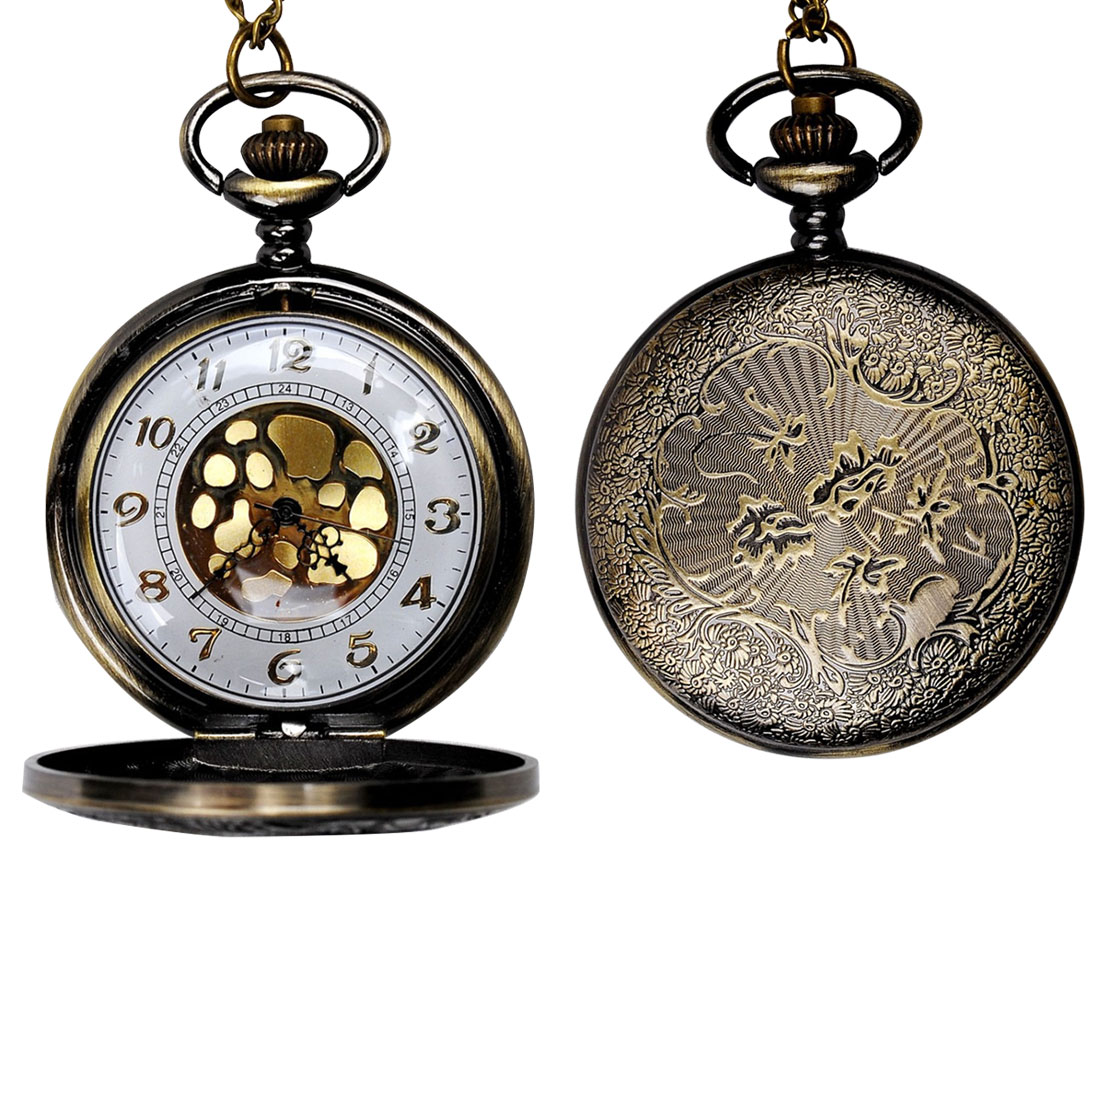 2018 Fashion Roman Scale Pocket Watch Bronze Fashion Wild Men And Women Chain Watch Classic Large Gold Face Roman Pocket Watch in Pocket Fob Watches from Watches